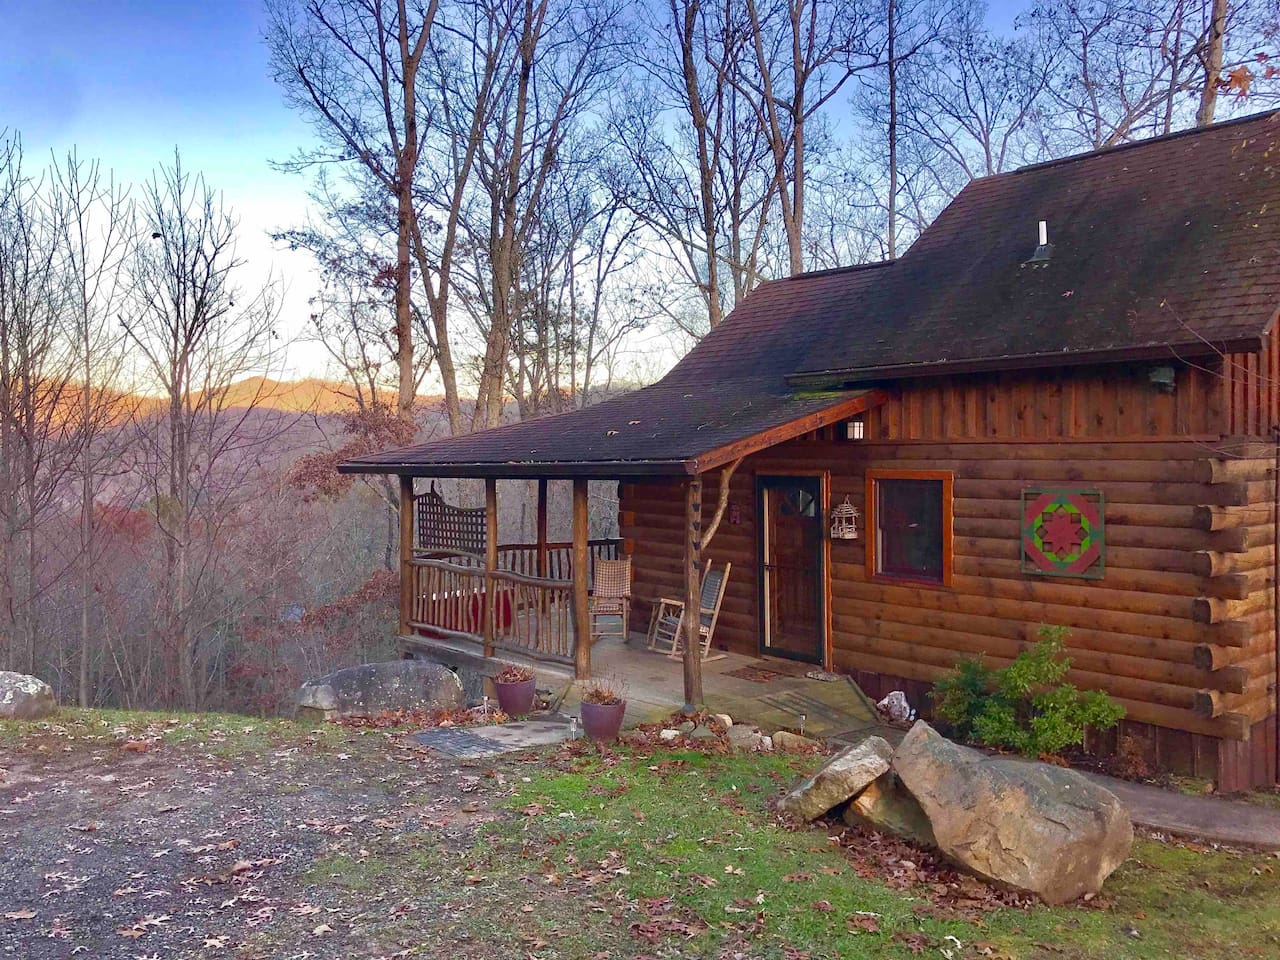 Welcome to the best private cabin on a mountain top in The township of Hot Springs, NC. Direct TV, WiFi, Hot Tub, Gas Fireplace, Outside Fire Pit Patio, Full Kitchen & Bath, 3 beds.